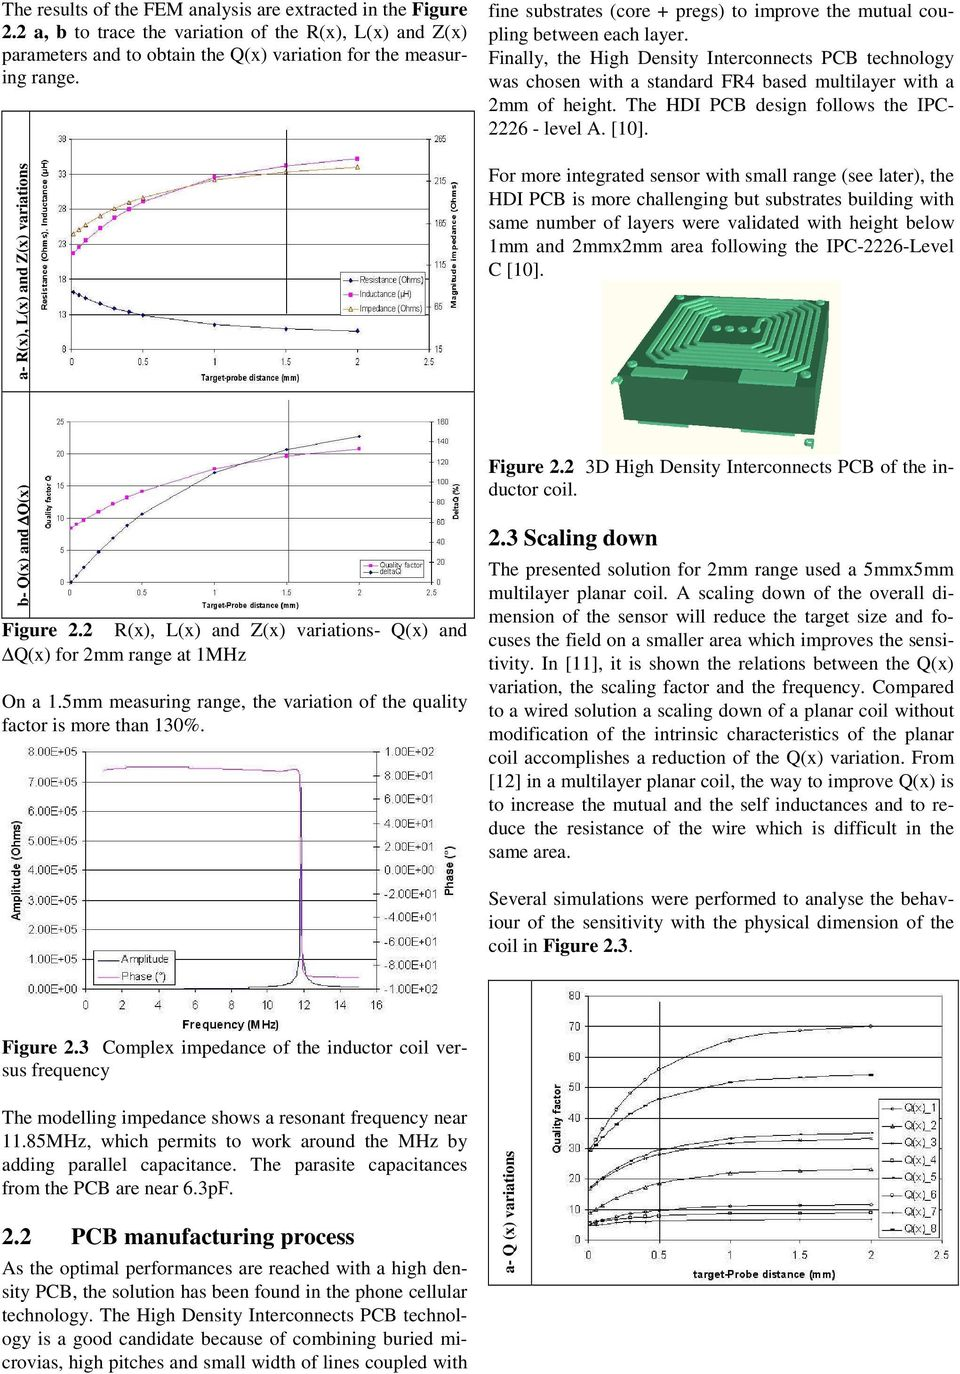 Eddy Current Sensors On Printed Circuit Board For Compact Mount 4 Layers Fr4 Timer Pcb Boards Design Of Hdi Finally The High Density Interconnects Technology Was Chosen With A Standard Based Multilayer